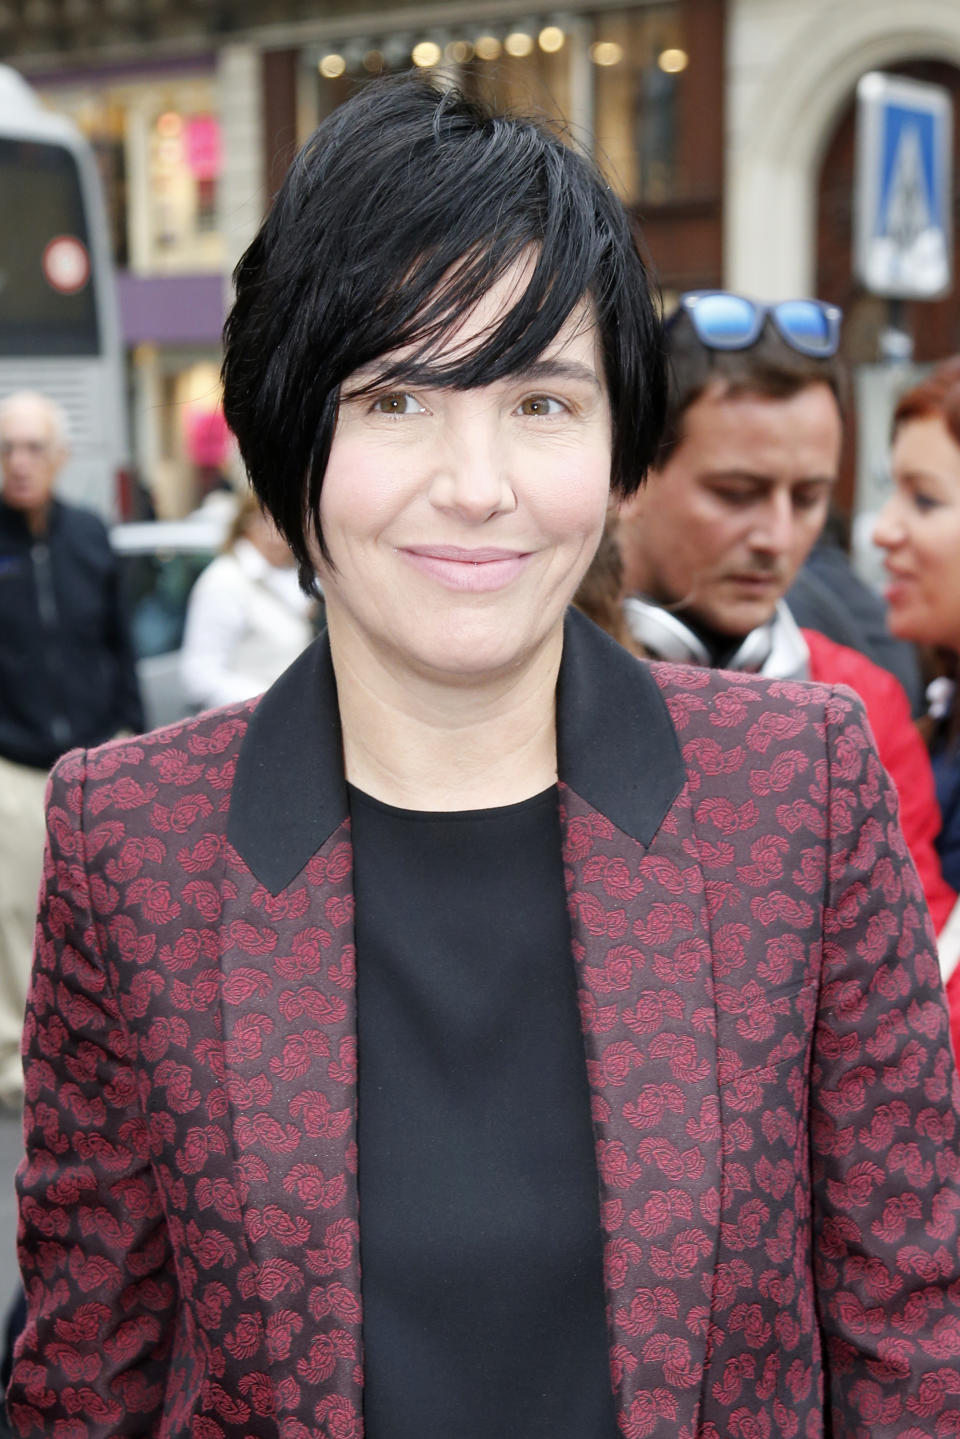 Sharleen Spiteri arrives to attend Stella McCartney's ready-to-wear Spring/Summer 2014 fashion collection, presented Monday, Sept. 30, 2013 in Paris. (AP Photo/Francois Mori)